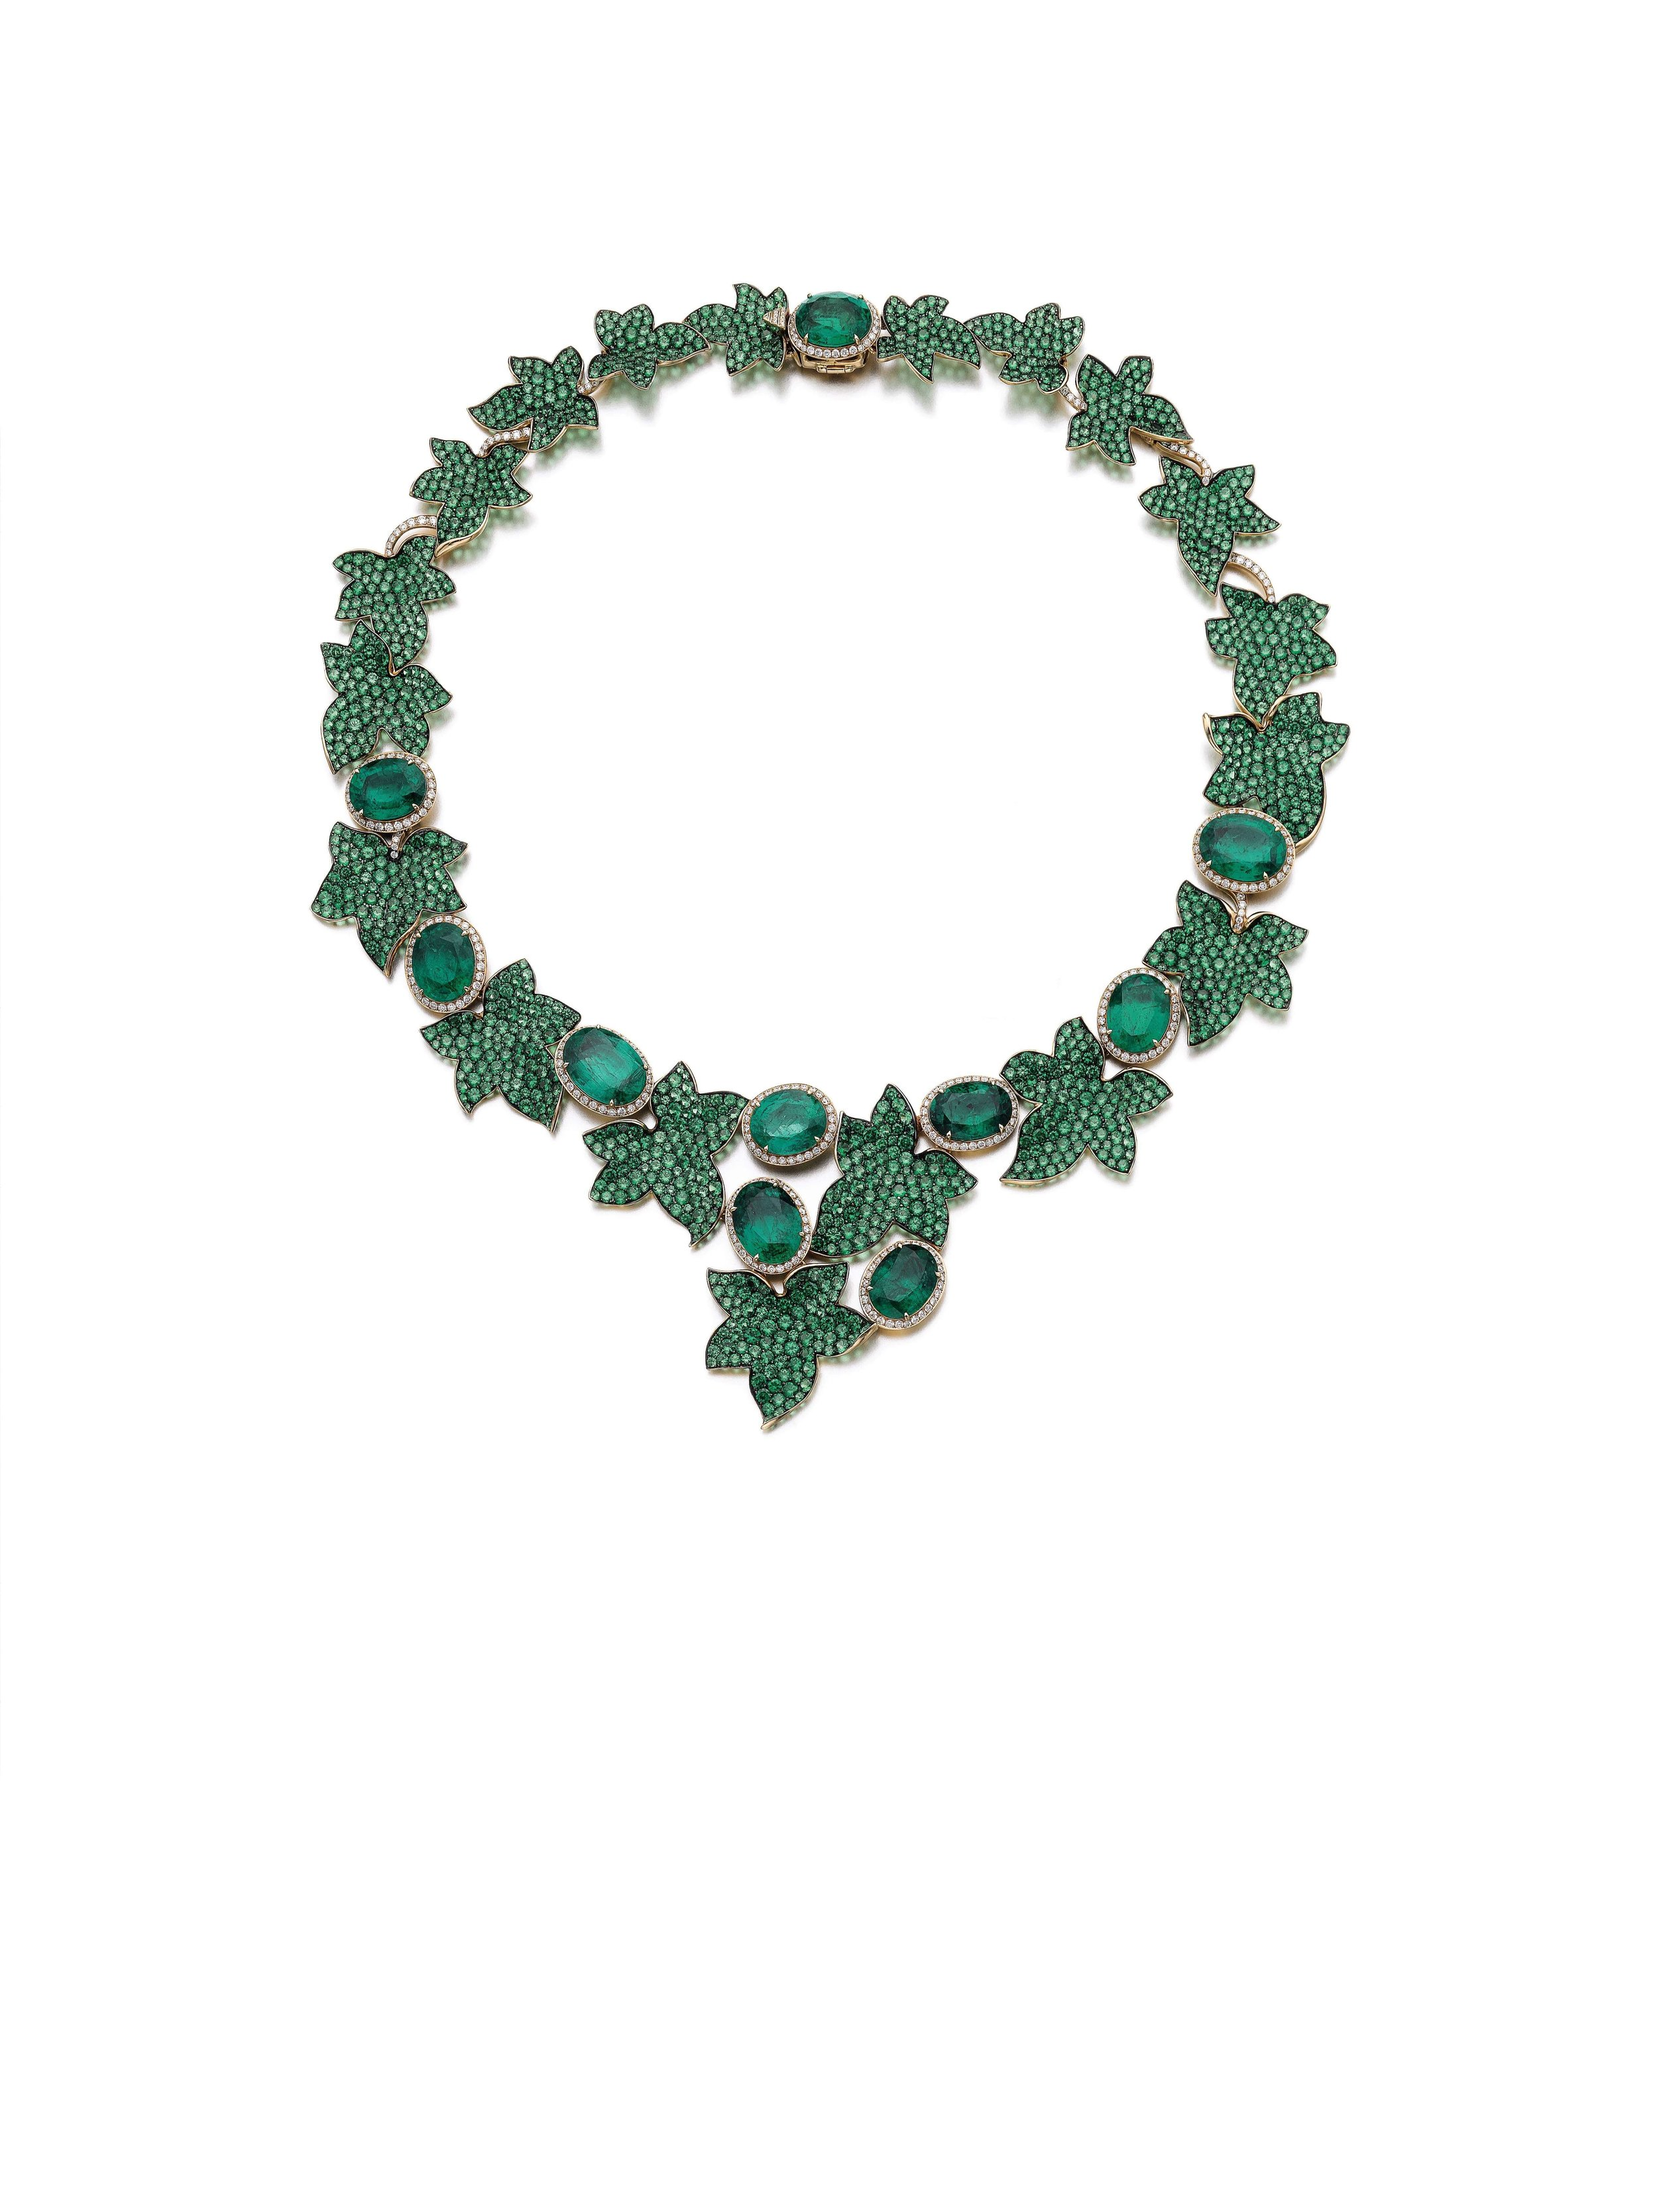 Emerald, tsavorite and diamond necklace, 'Ivy' Of foliate design, pavé-set with circular-cut tsavorites, alternating with gold motifs set with oval emeralds